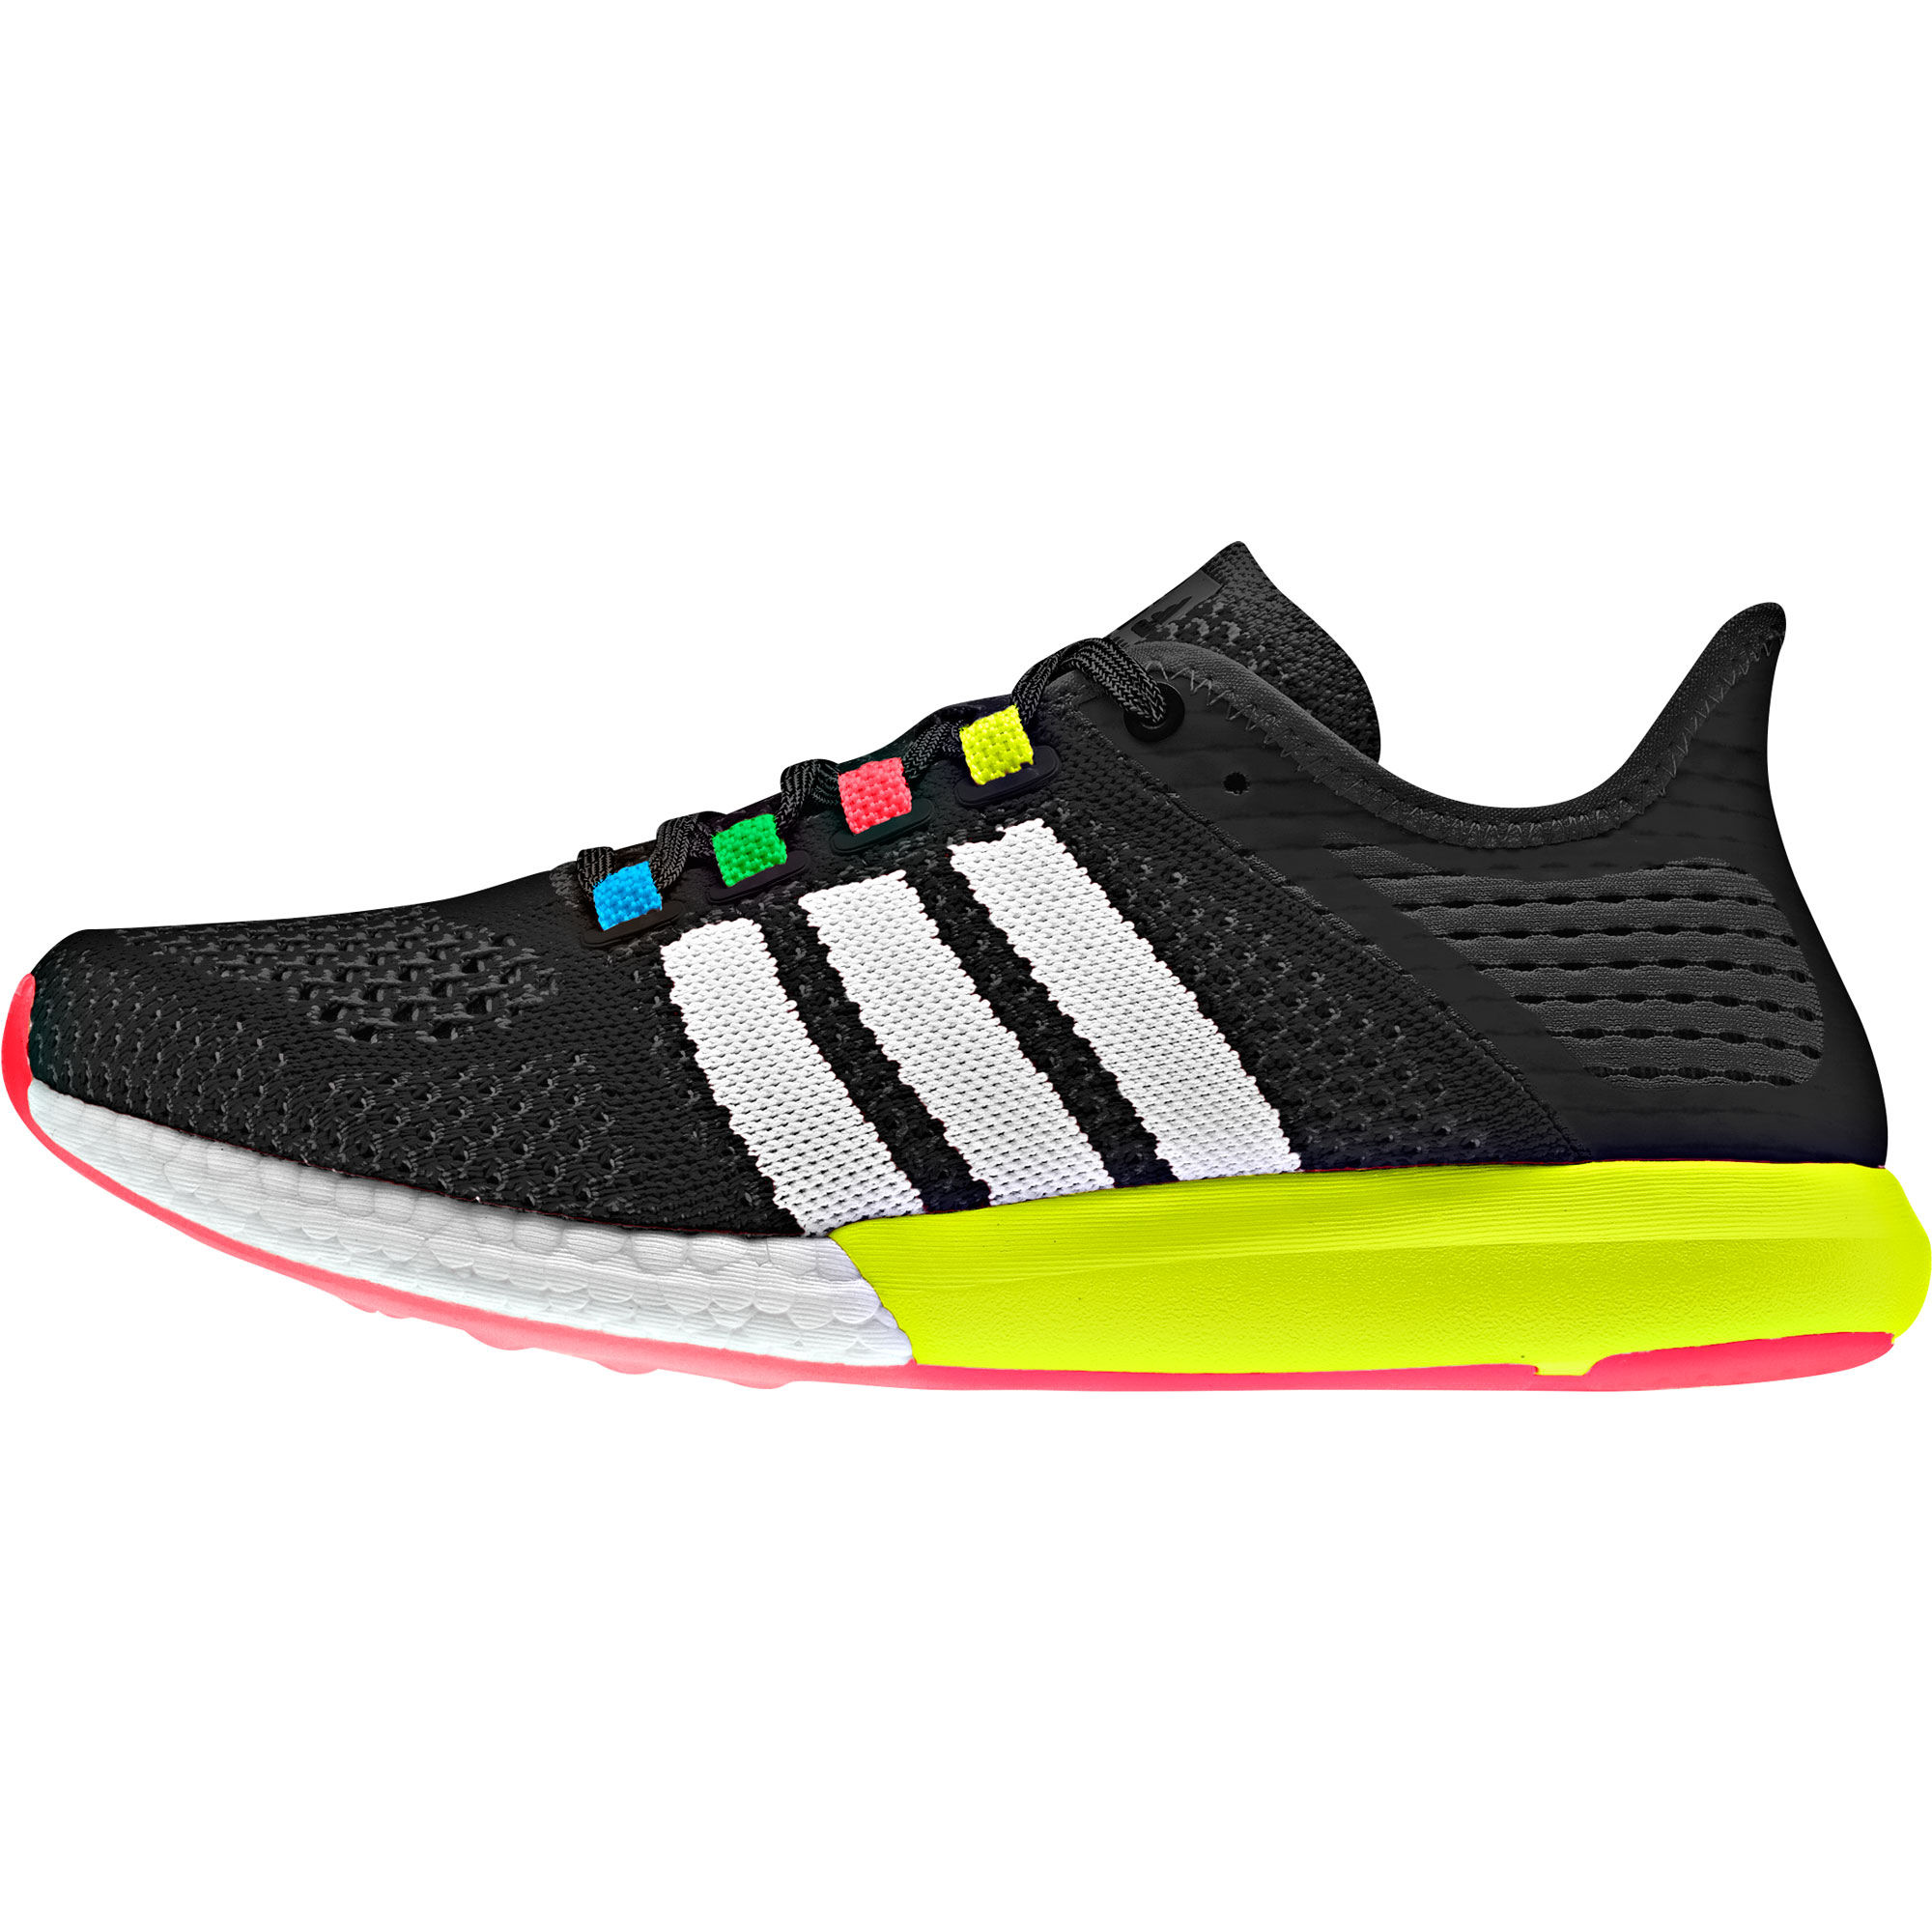 adidas climachill cosmic boost schuhe f r frauen f s 15. Black Bedroom Furniture Sets. Home Design Ideas